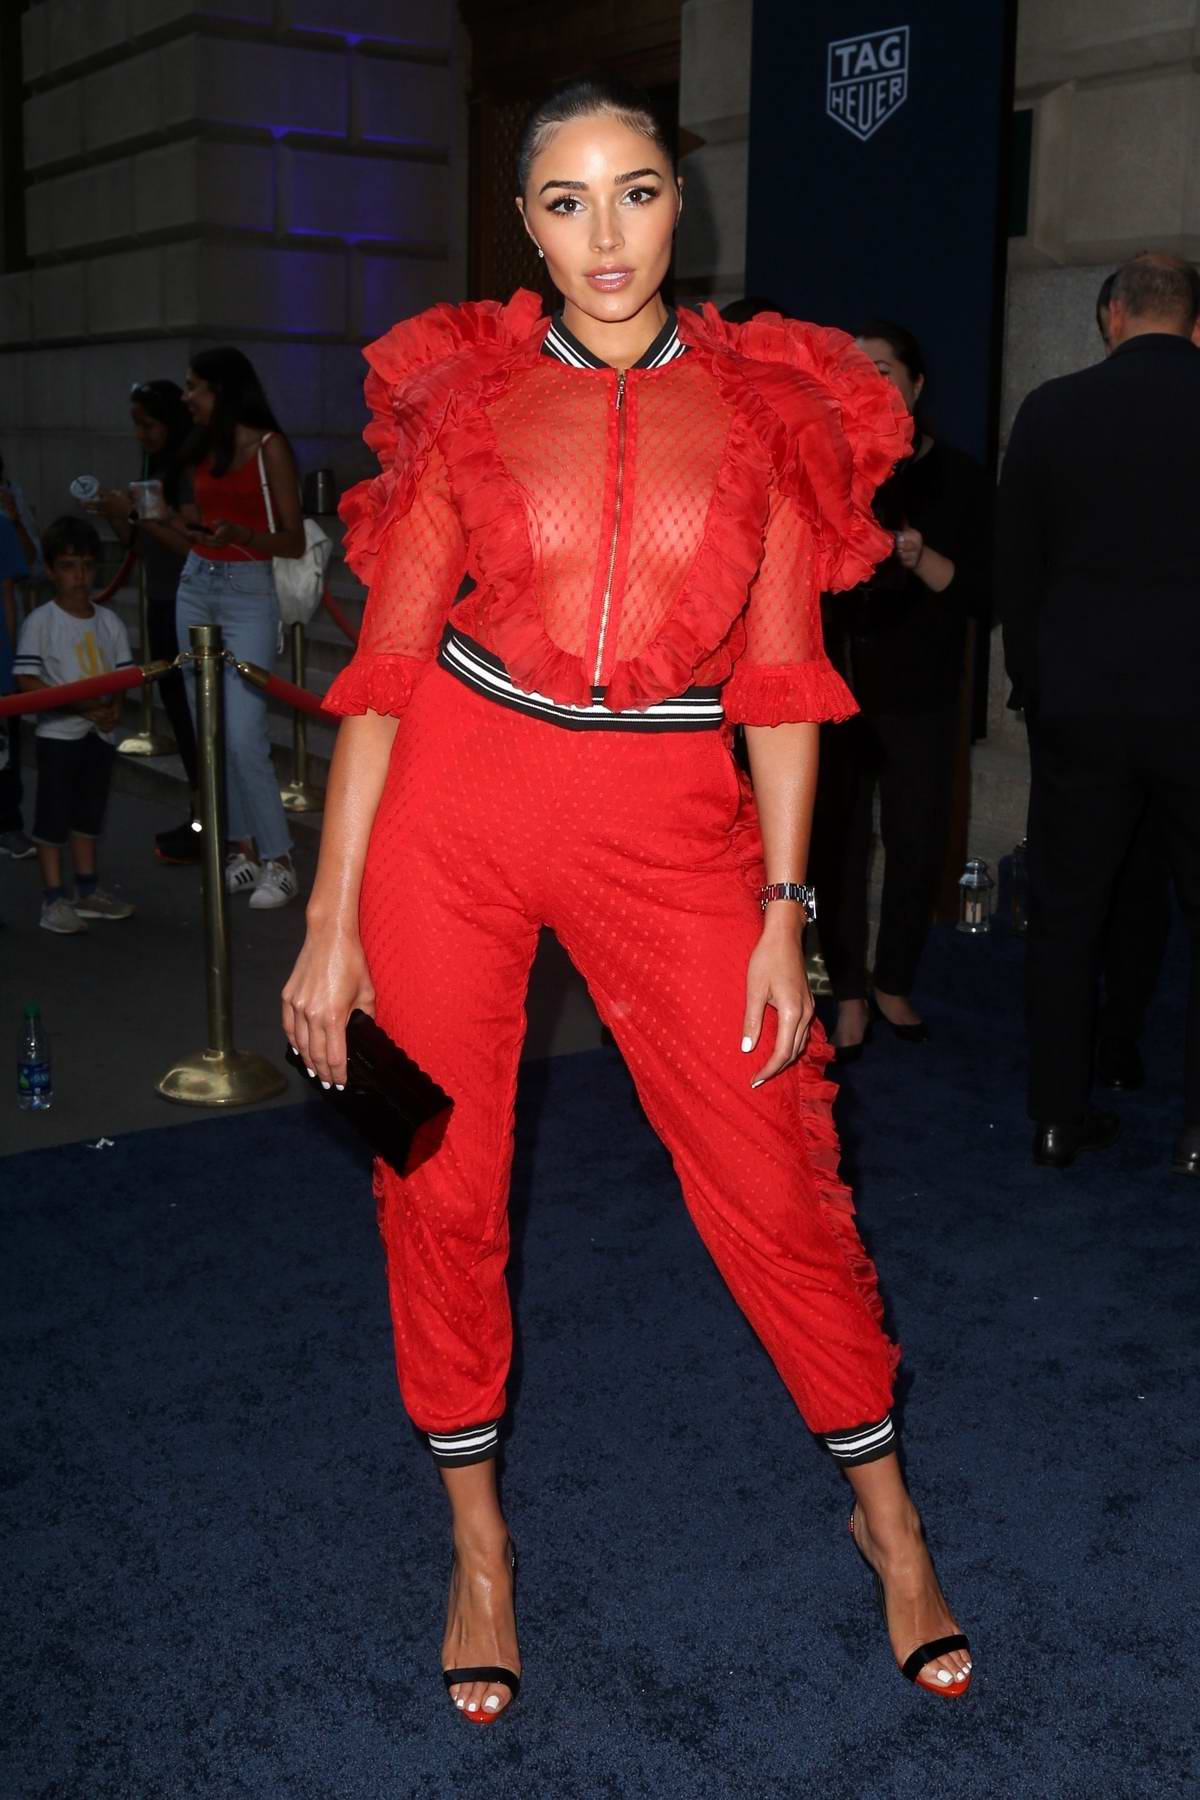 Olivia Culpo dazzles in red as she attends the Tag Heuer event in New York City